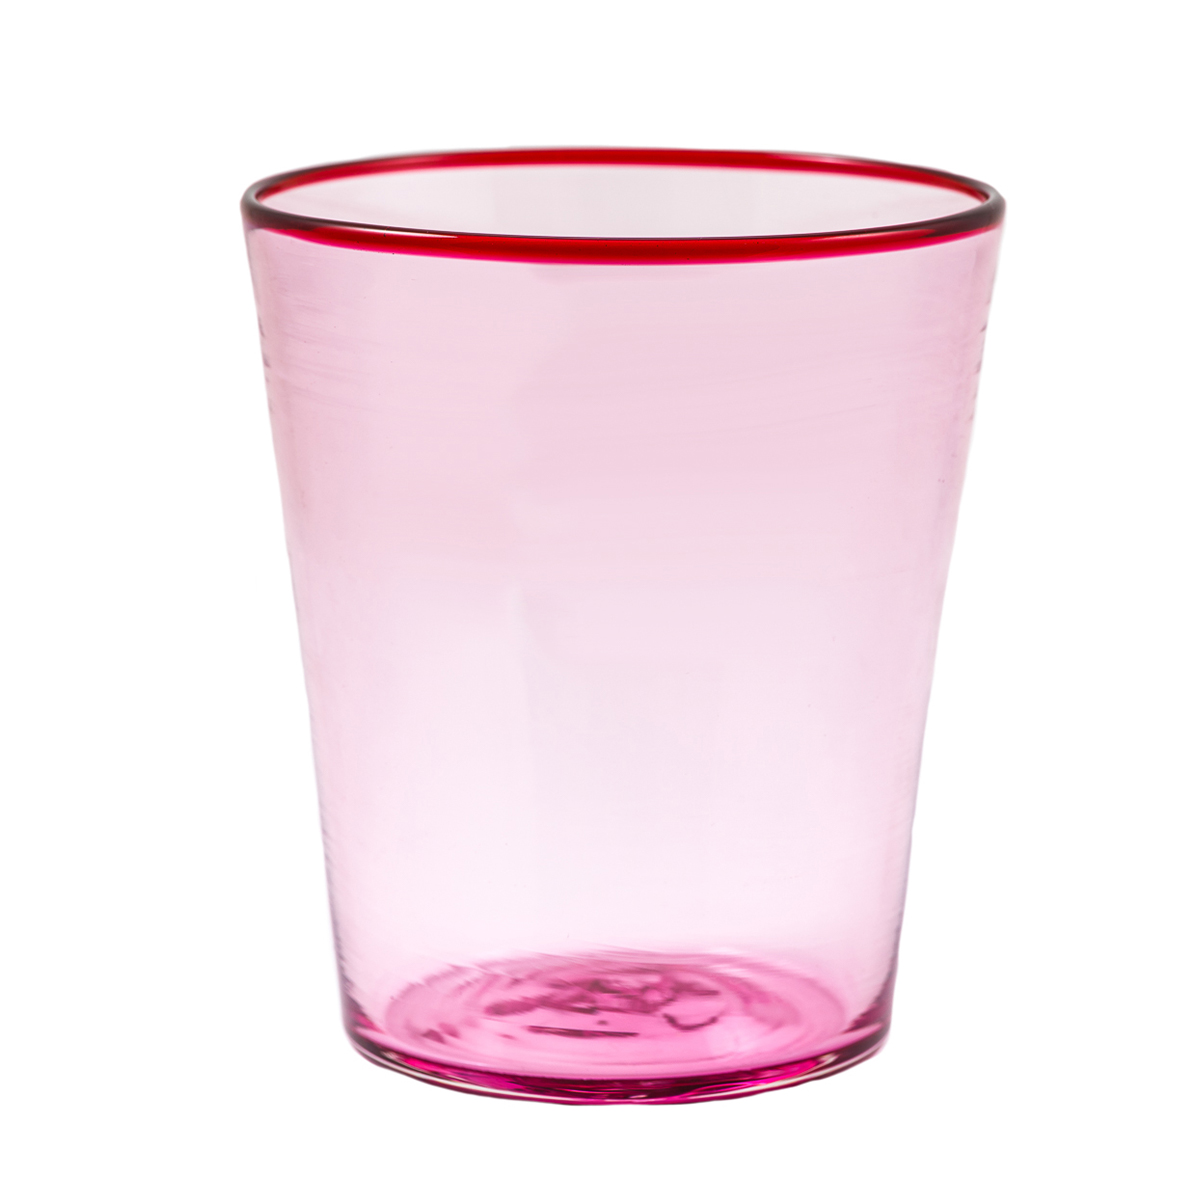 vaso-glass-giberto-colorful-spring-season-rose-luxury-venice-design